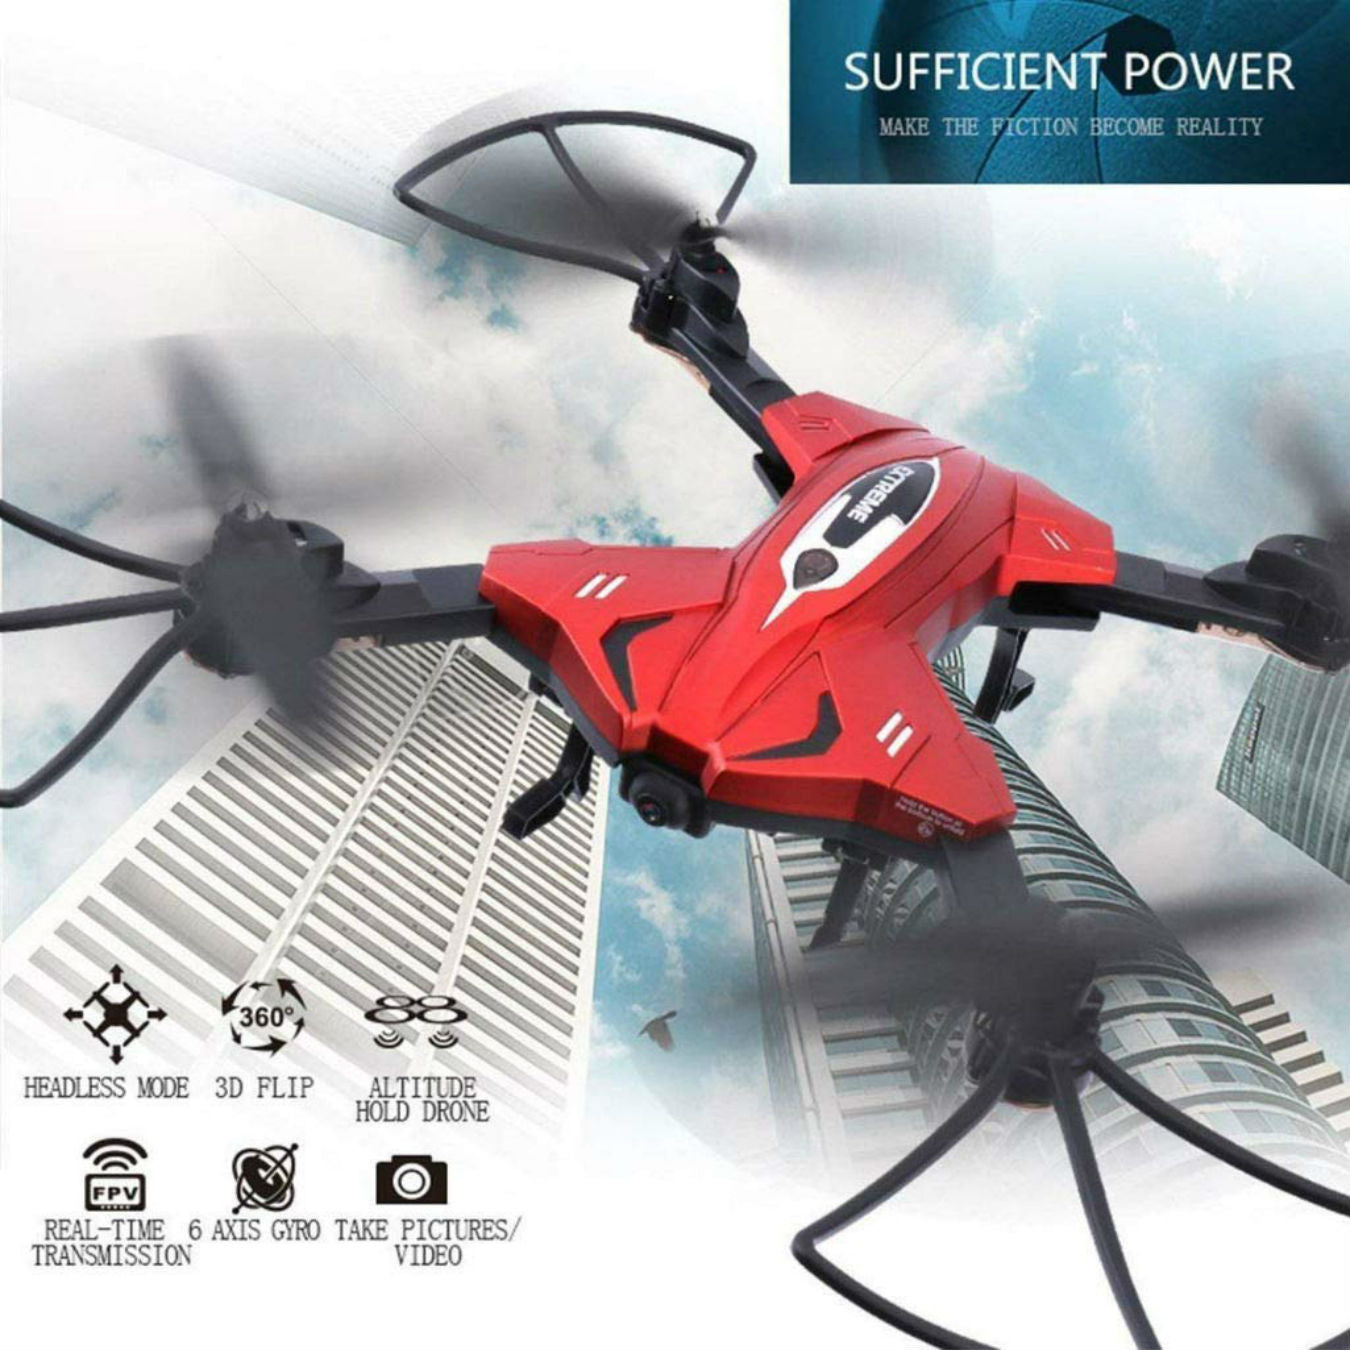 SkyCo Foldable Rc WiFi FPV WiFi Drone Quadcopter with HD Camera Live Video One-Key-Return RFT Headless Helicopter Altitude Hold